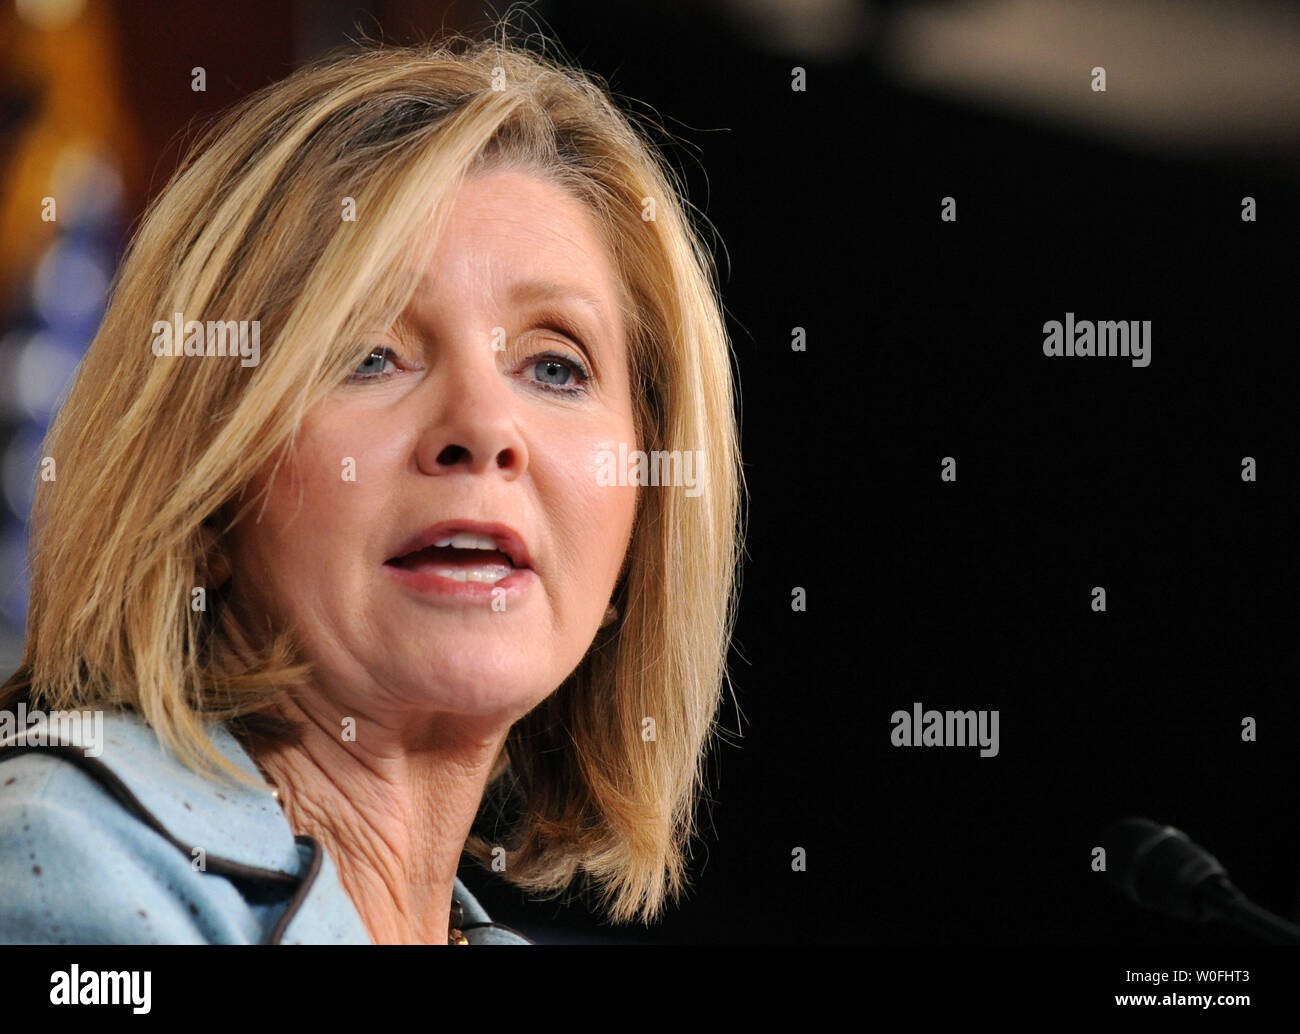 Rep. Marsha blackburn (R-TN) speaks on the health care reform bill and the possibility that the bill could provide public funding for abortions, in Washington on March 18, 2010. UPI/Kevin Dietsch Stock Photo